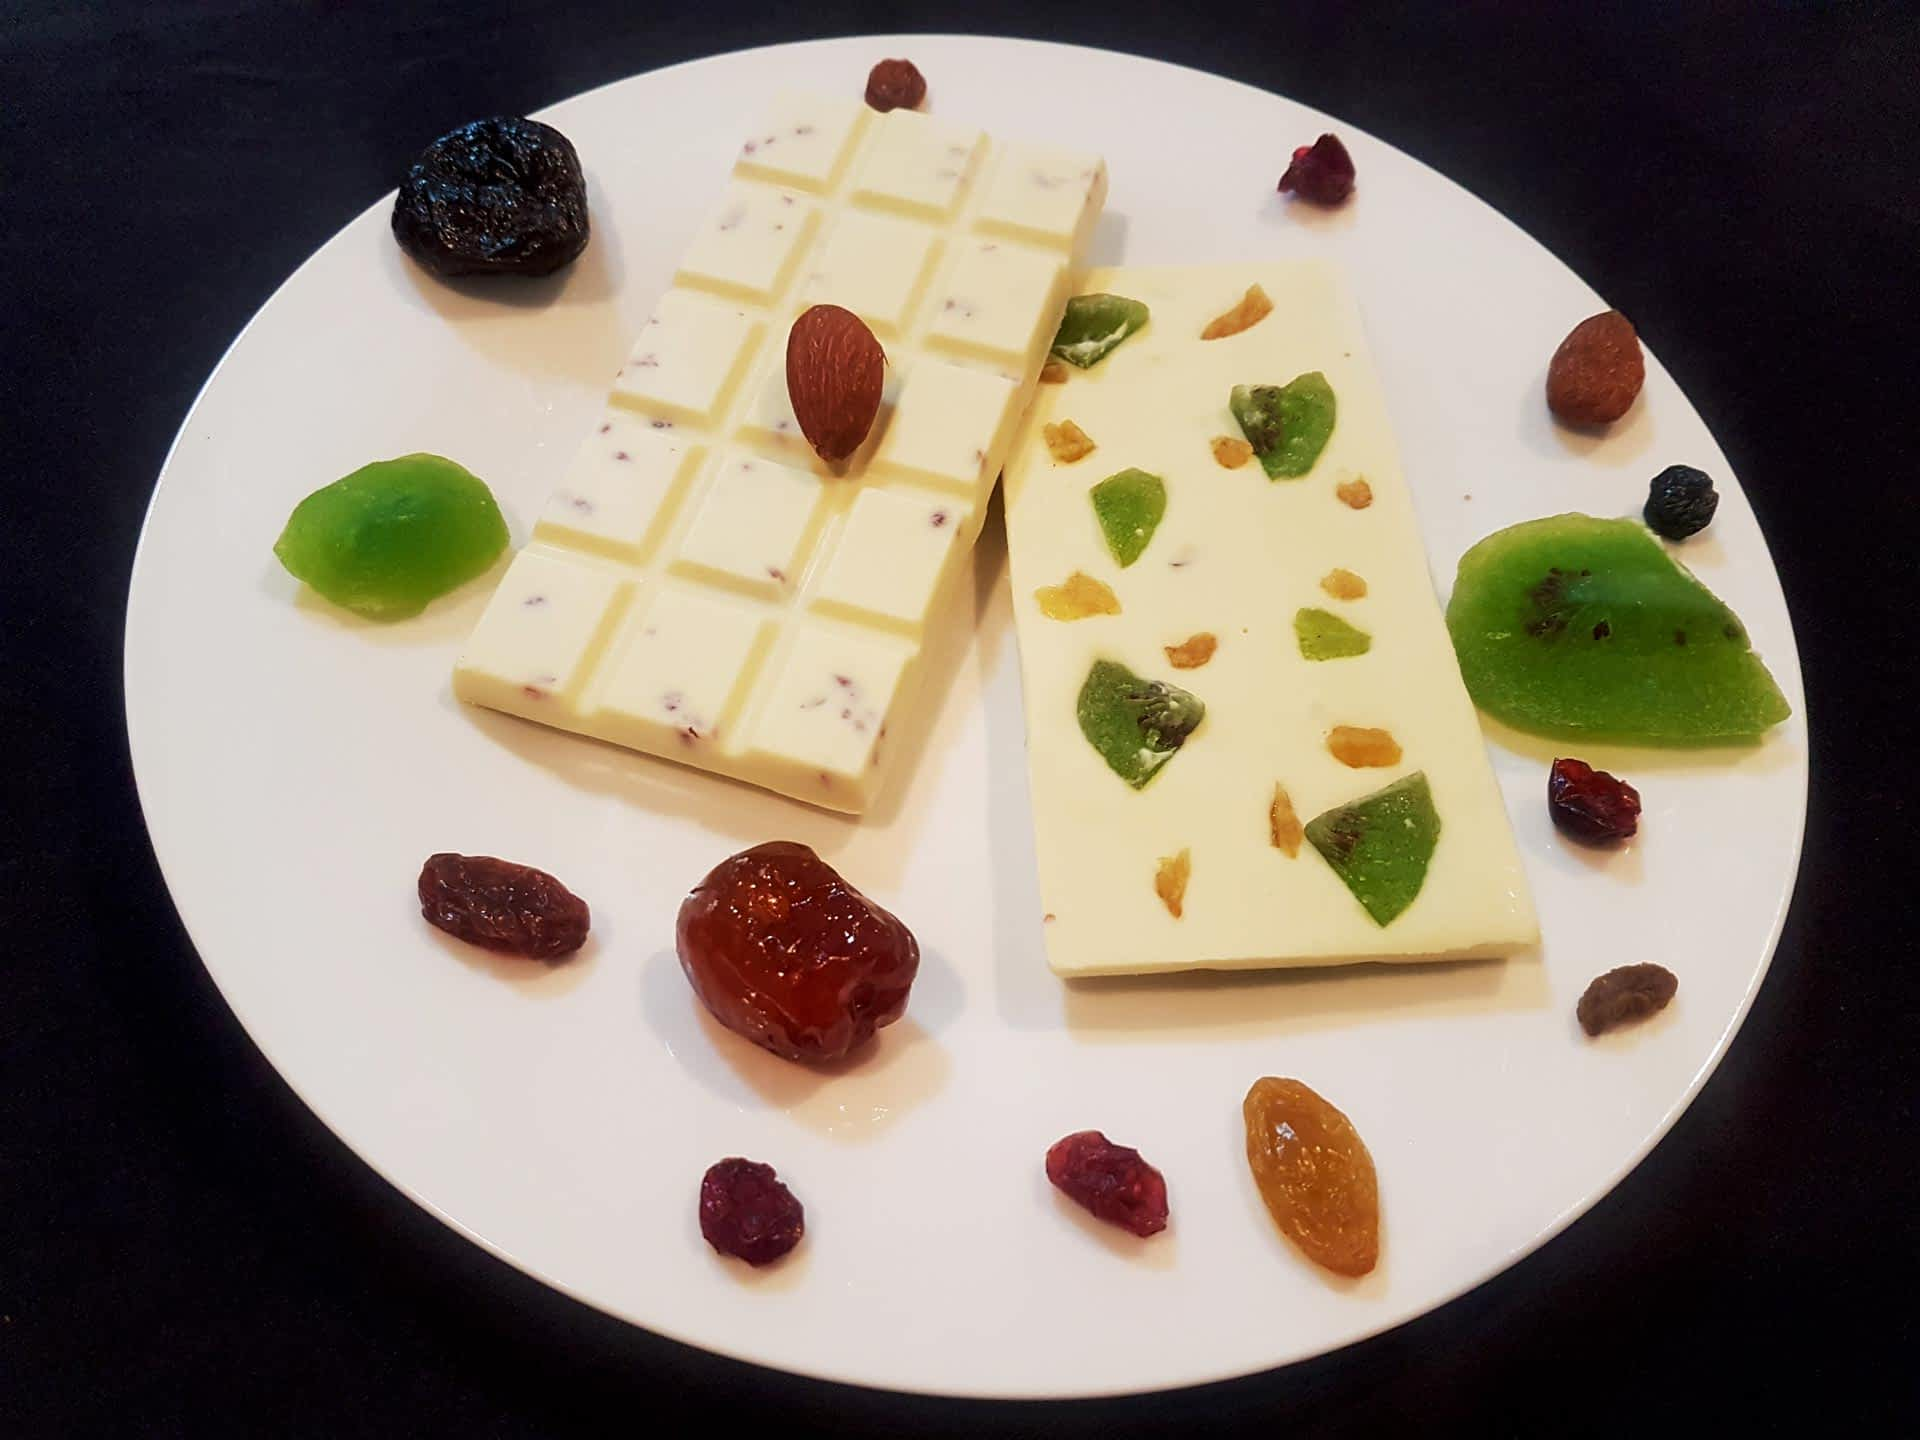 Fruity white chocolate surrounded by candied fruit.